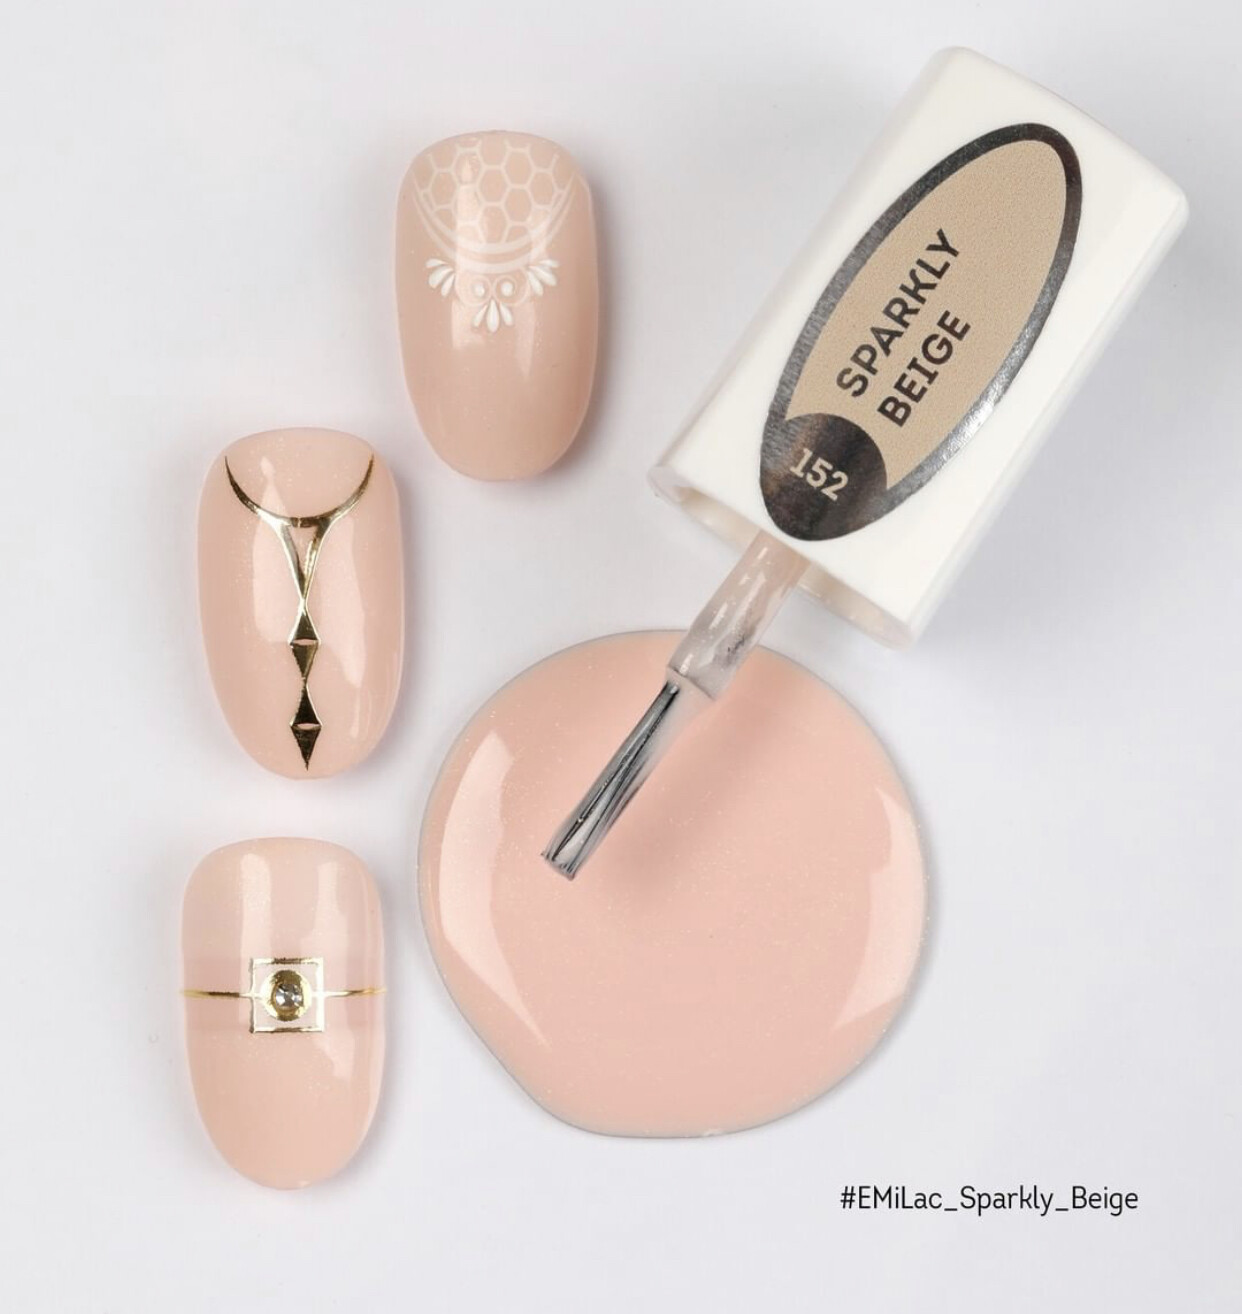 E.MiLac #152 Sparkly Beige — soft peach-colored shade with a fine shimmer